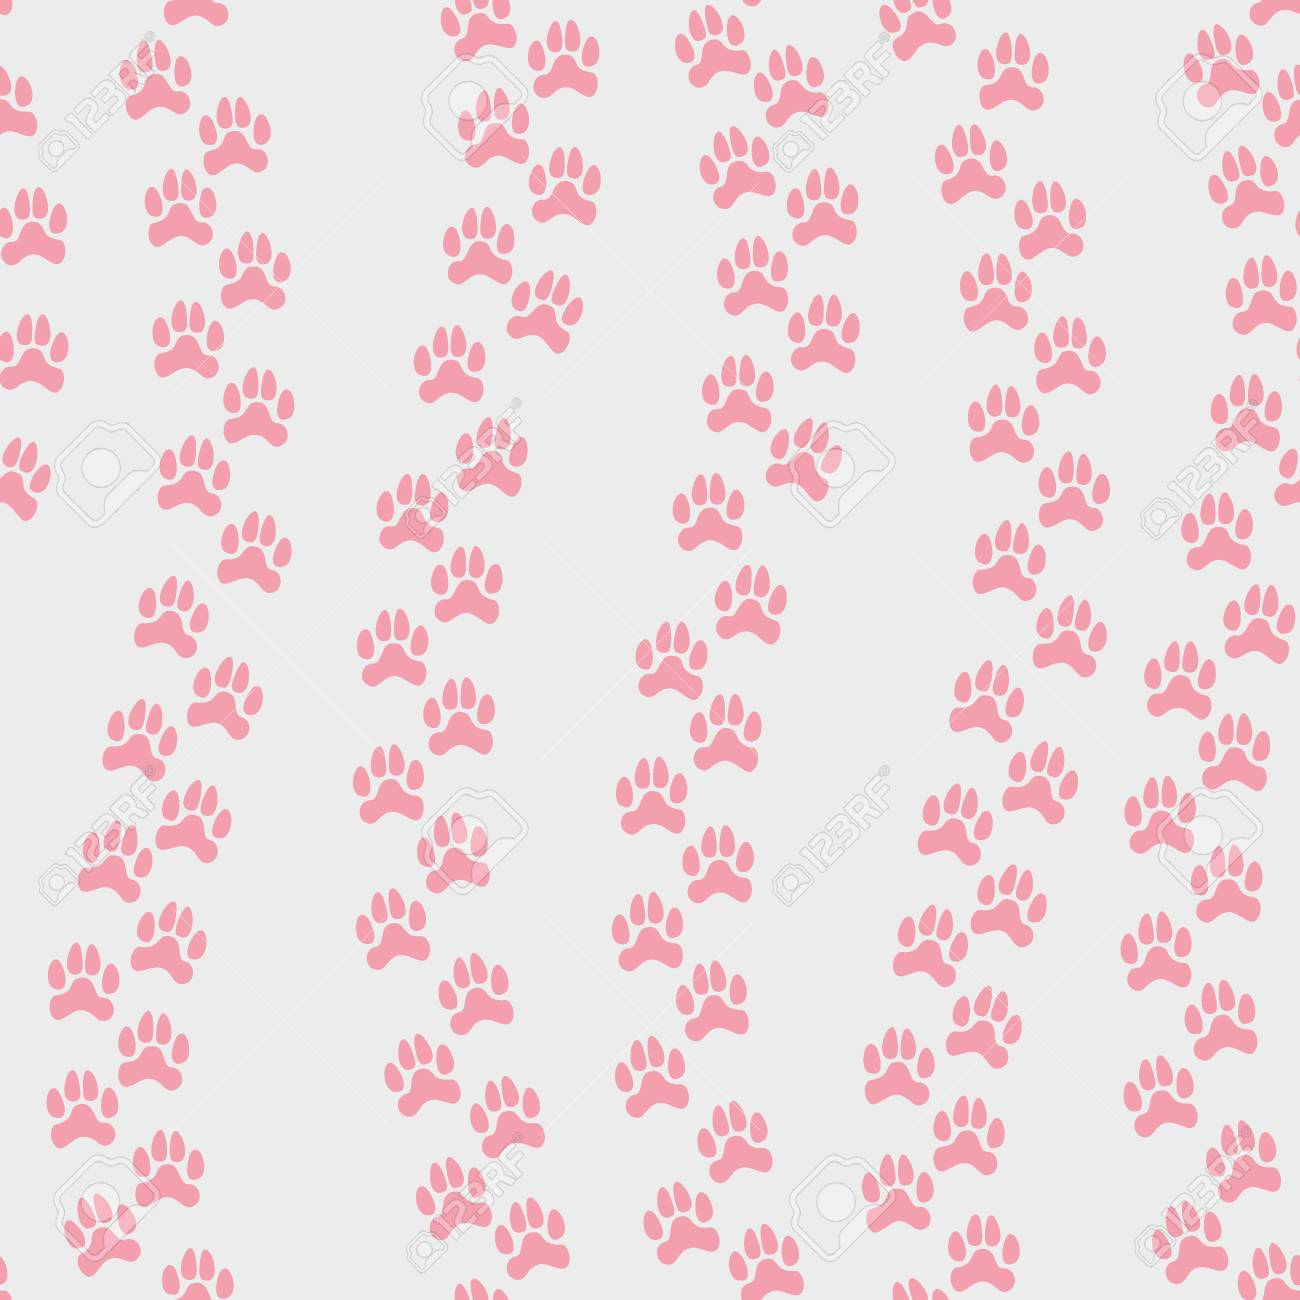 Vector Seamless Pattern With Pink Animals Footprint Isolated